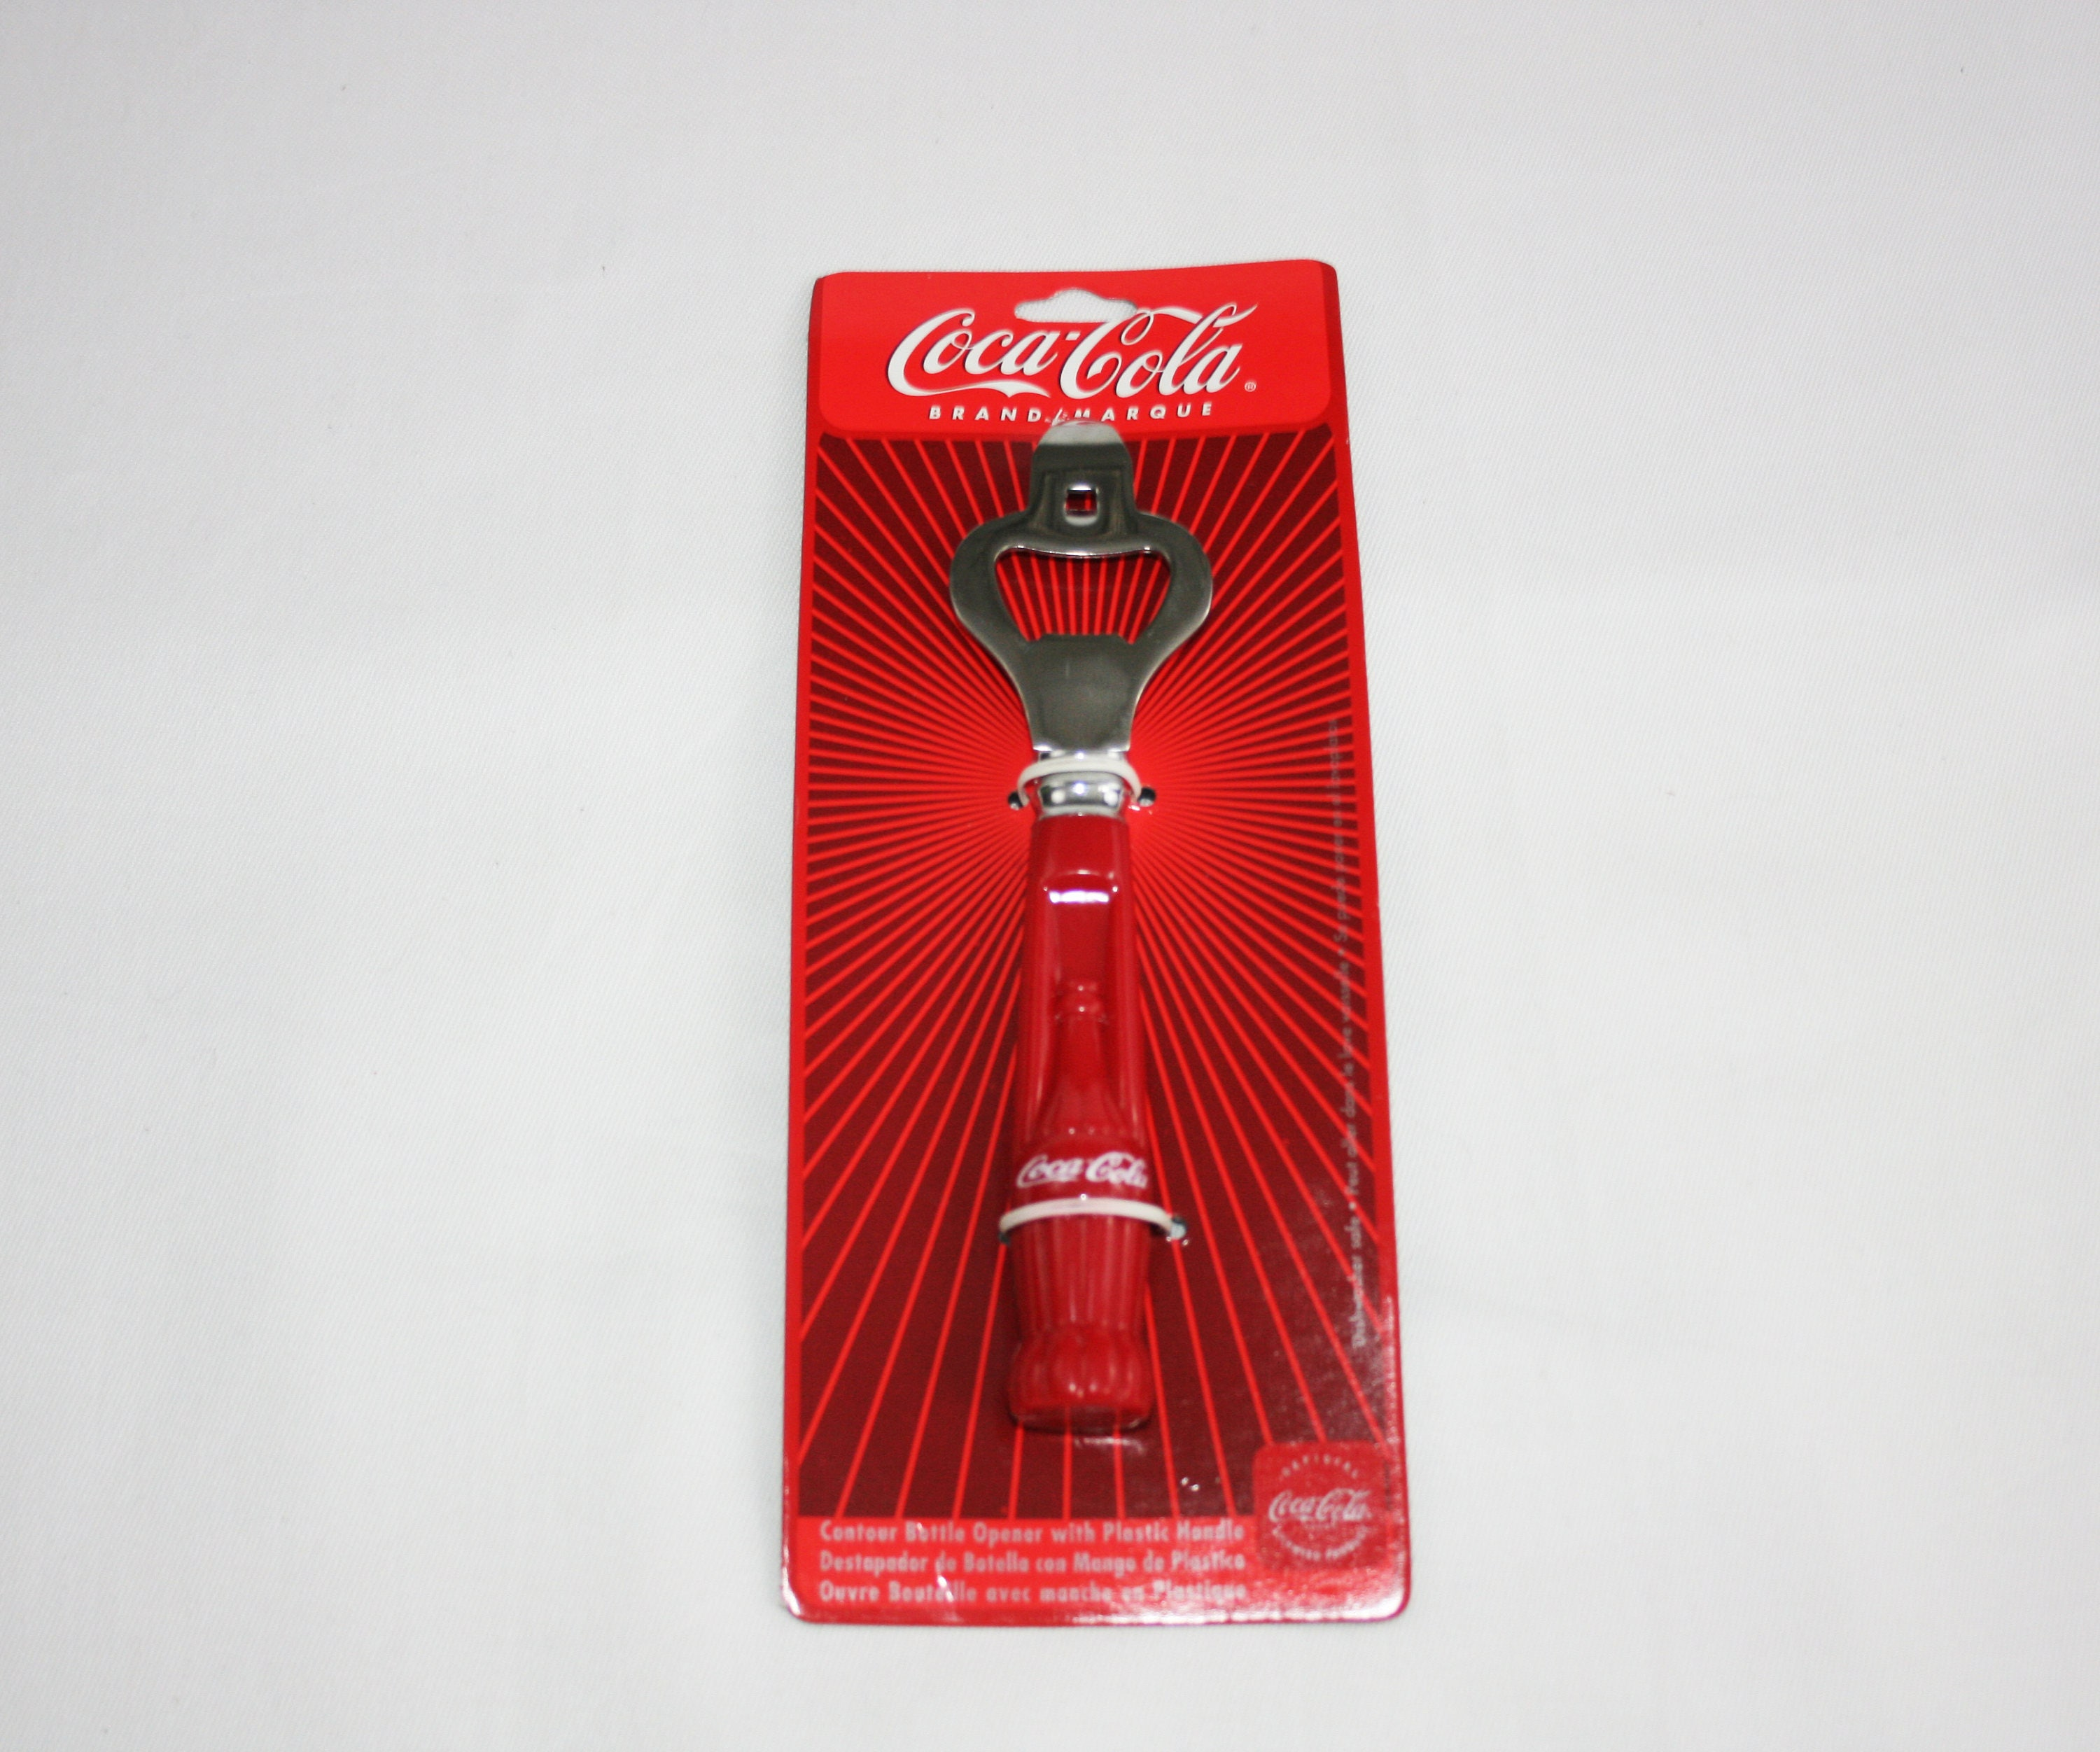 Vintage Coca Cola Bottle Opener by Gibson Overseas Inc. - Coke Collectibles  Memorabilia Ephemera Can Opener